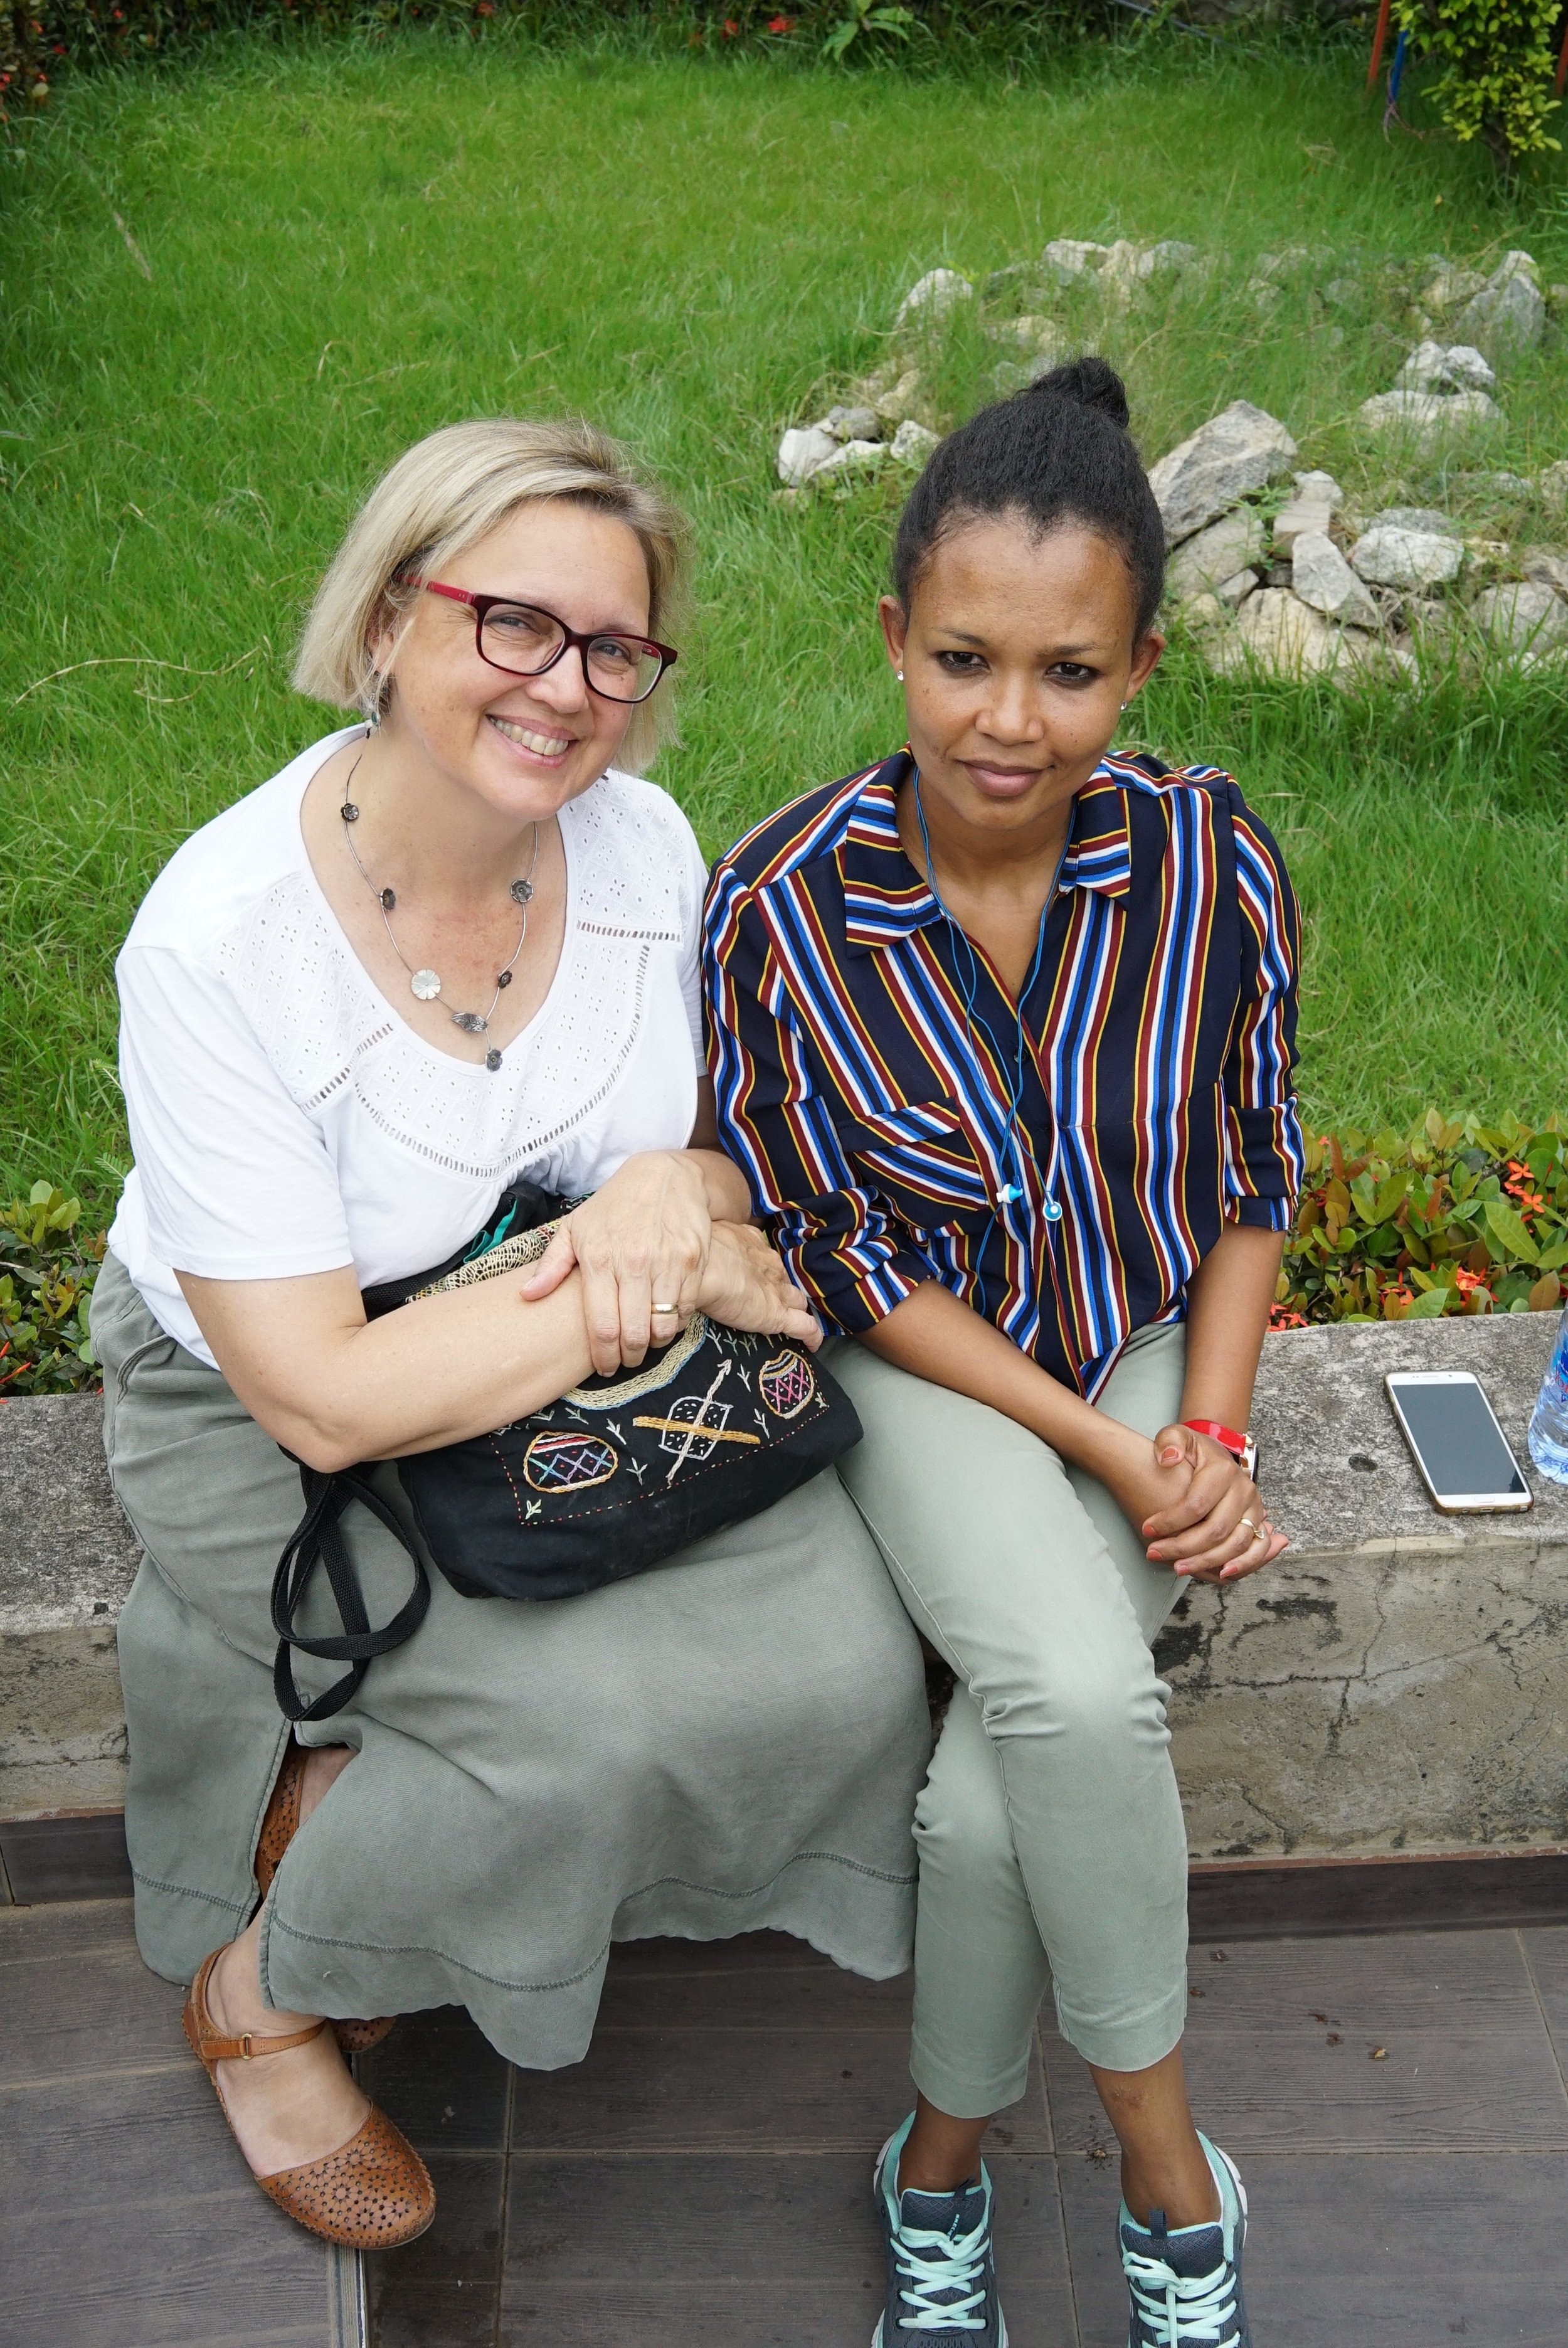 Dr Lara Allen (Director, Centre for Global Equality) and Sewnet Alemu (researcher from Bahir Dar University)